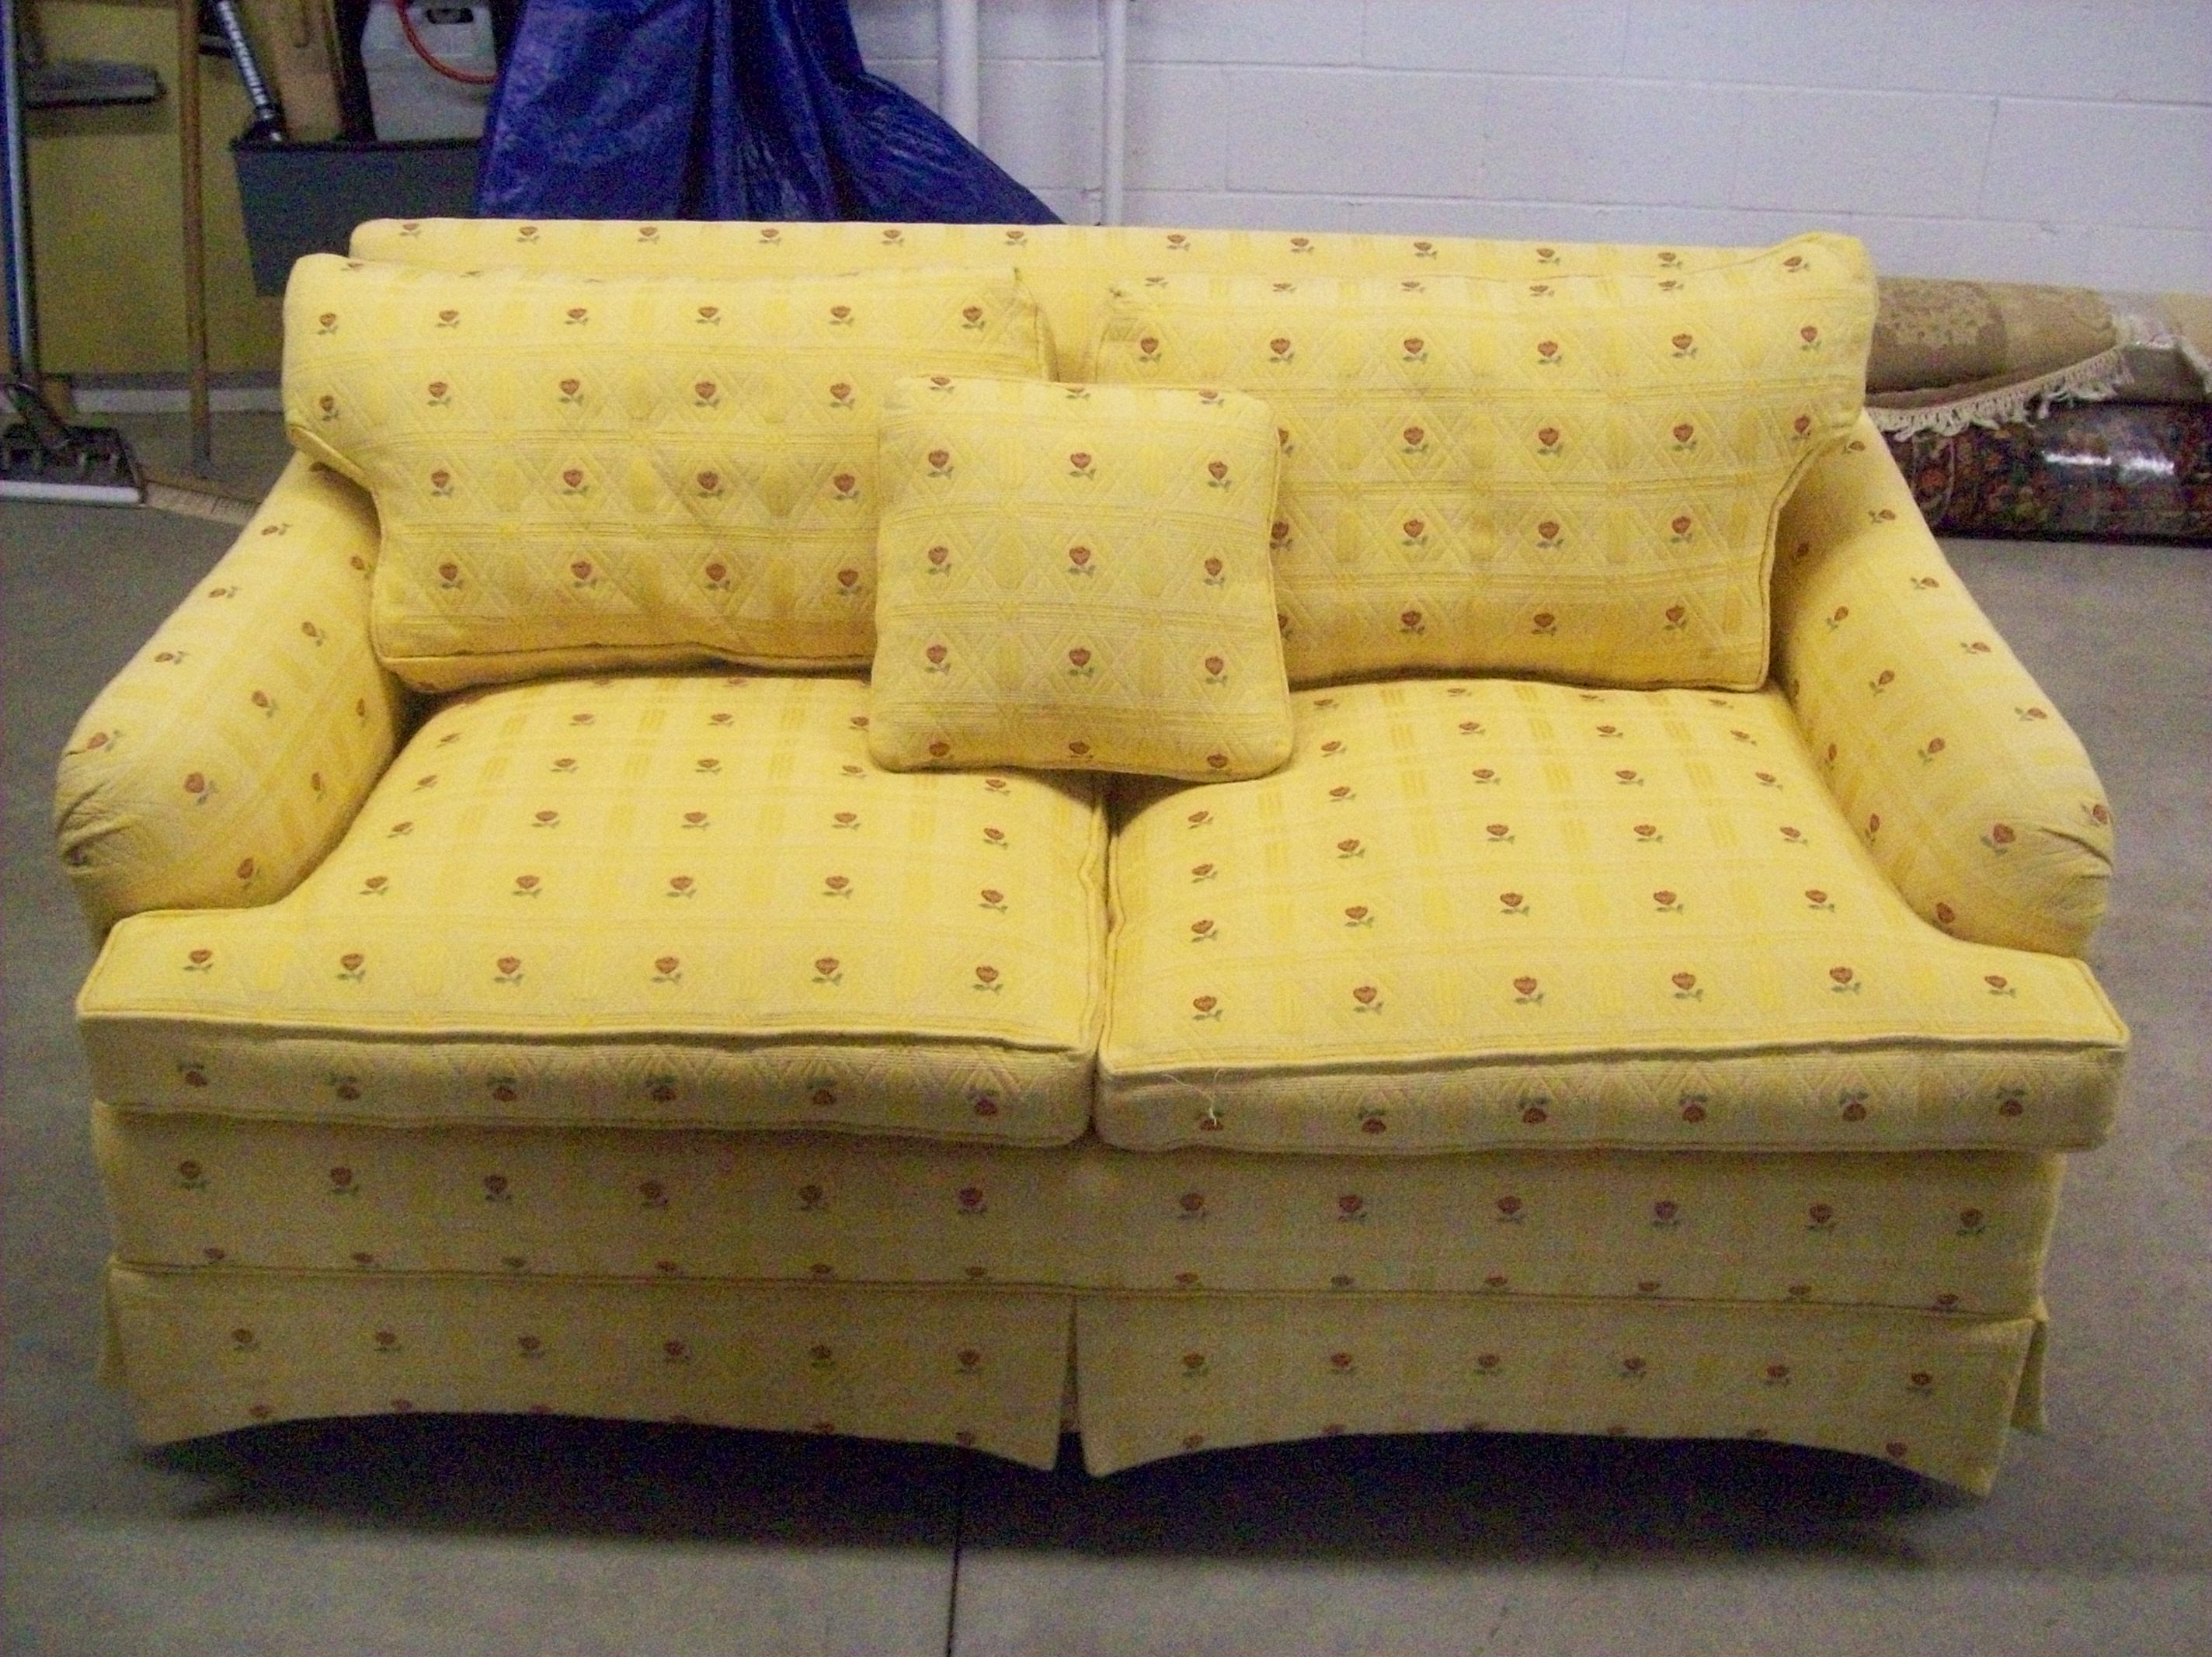 How To Remove Odors From Upholstery And Other Difficult To